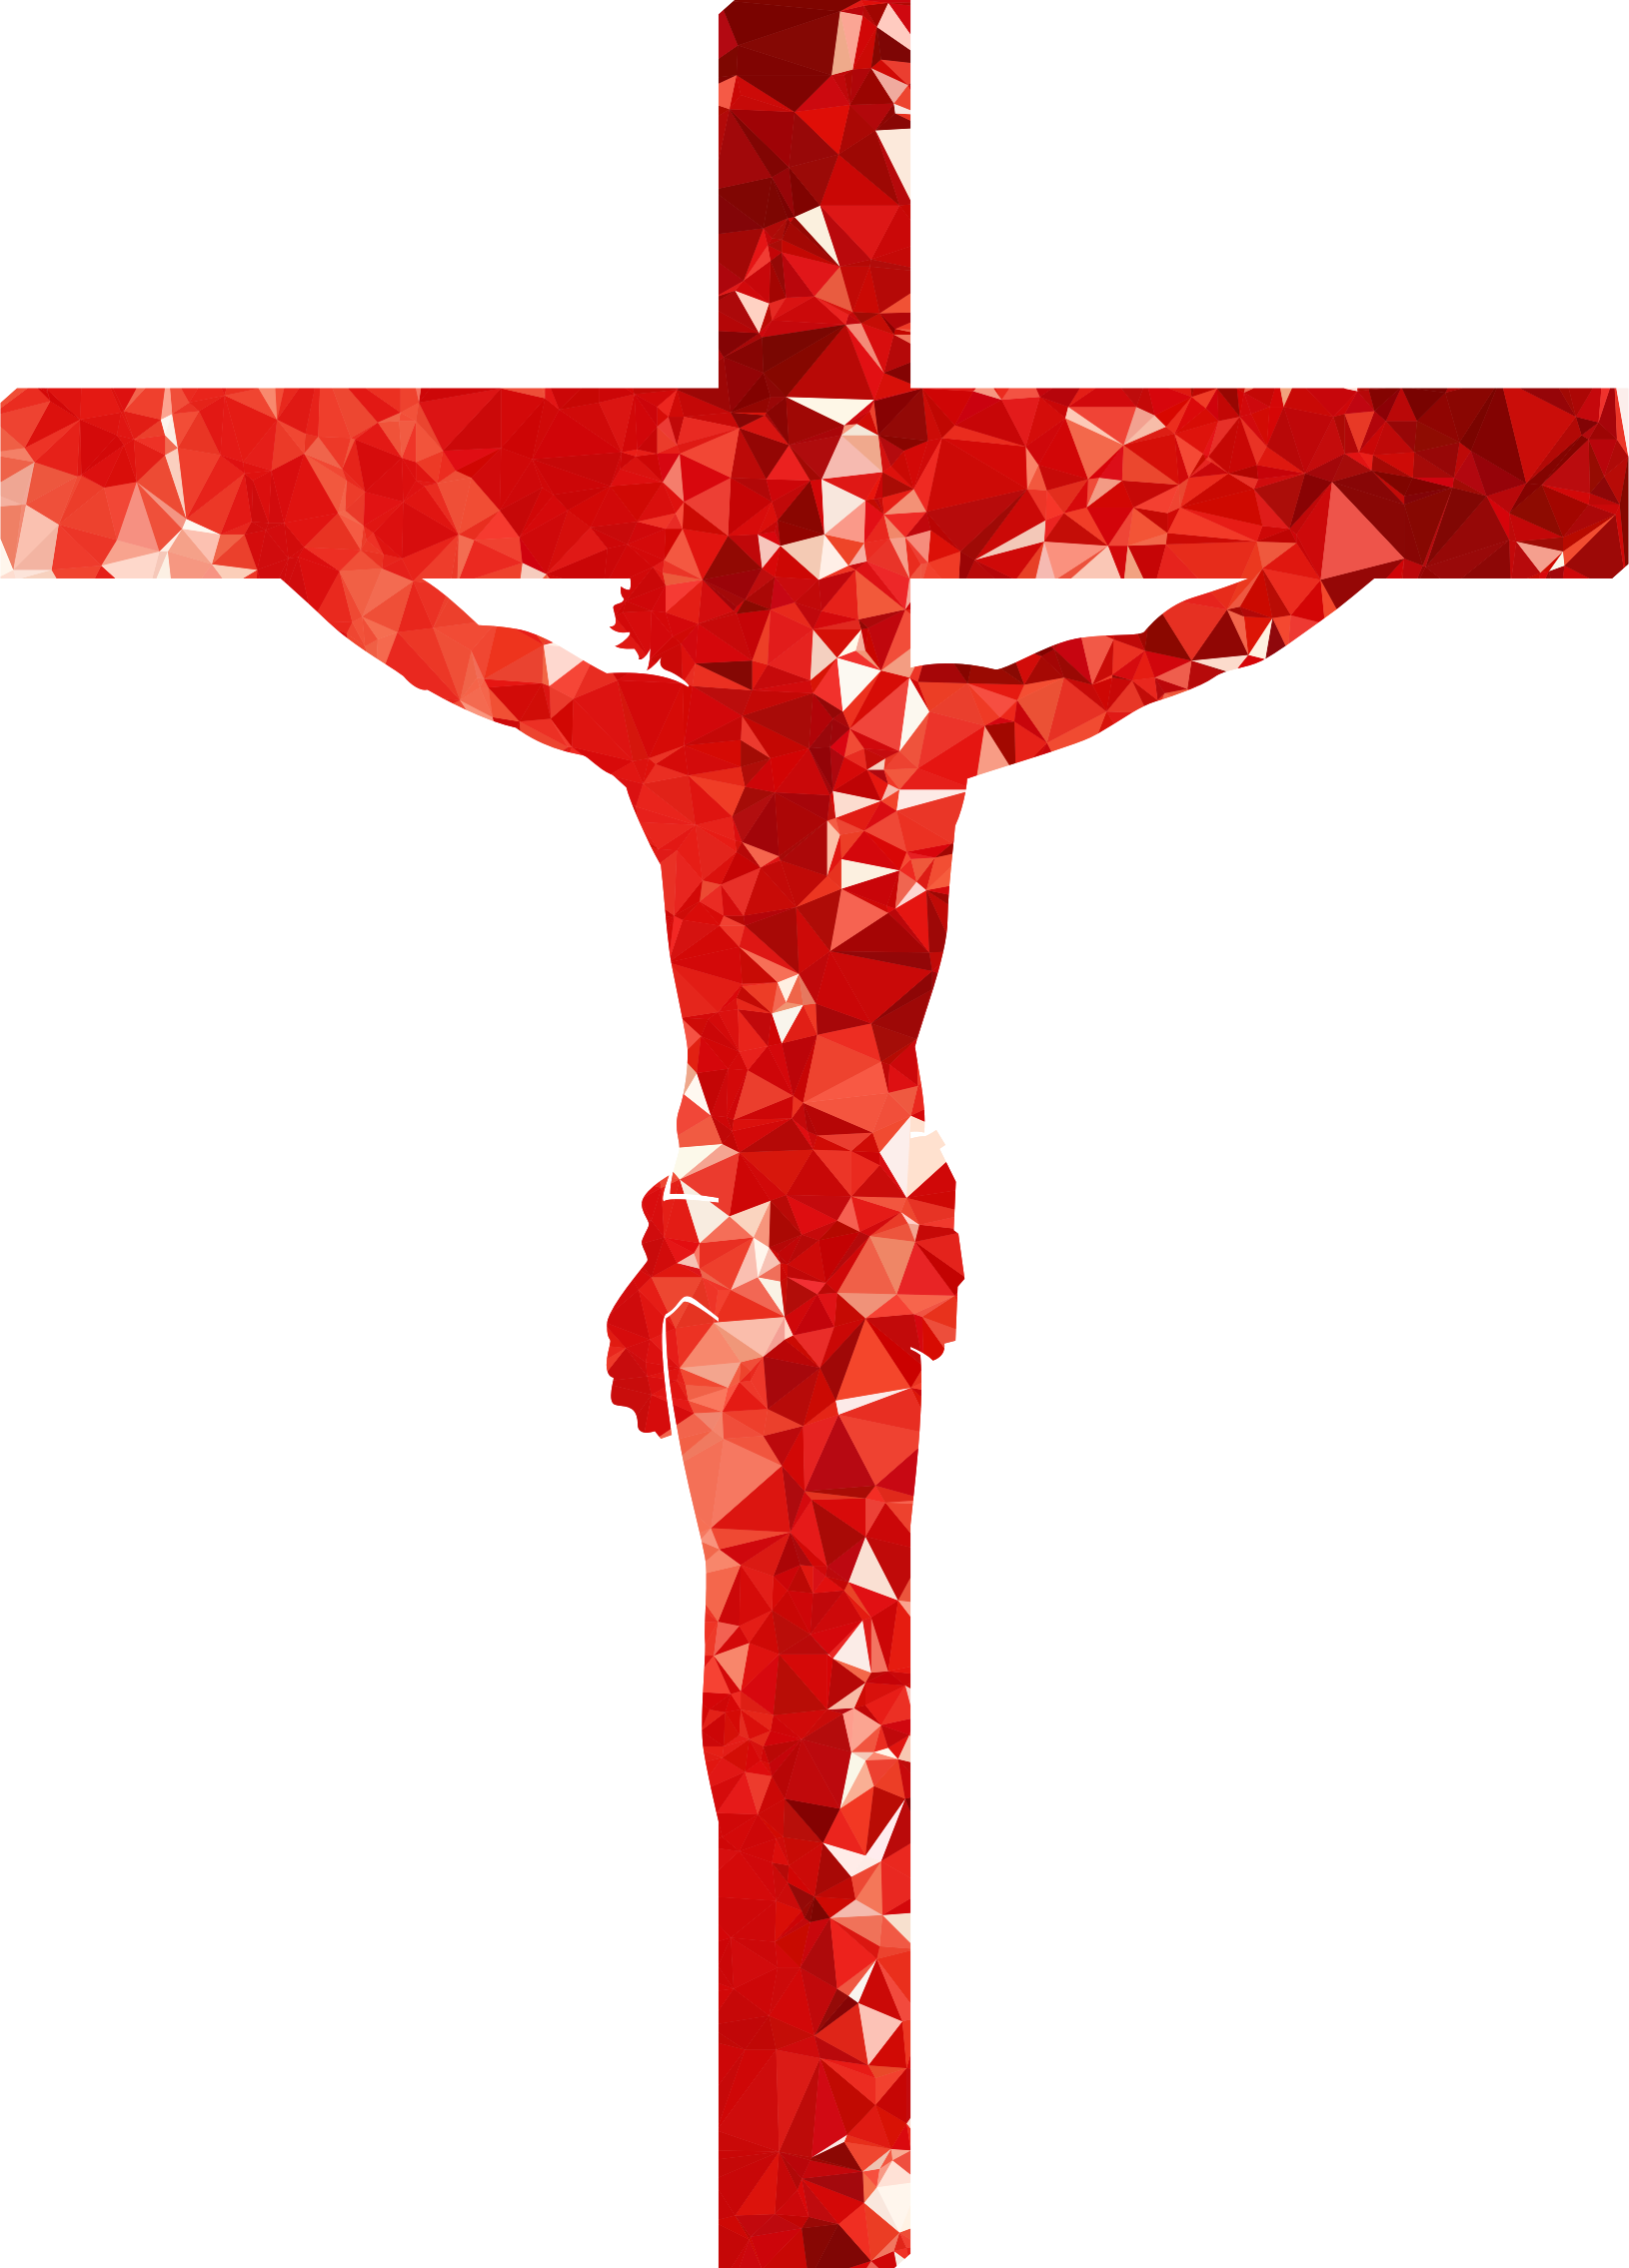 clipart freeuse stock Ruby big image png. Crucifix clipart